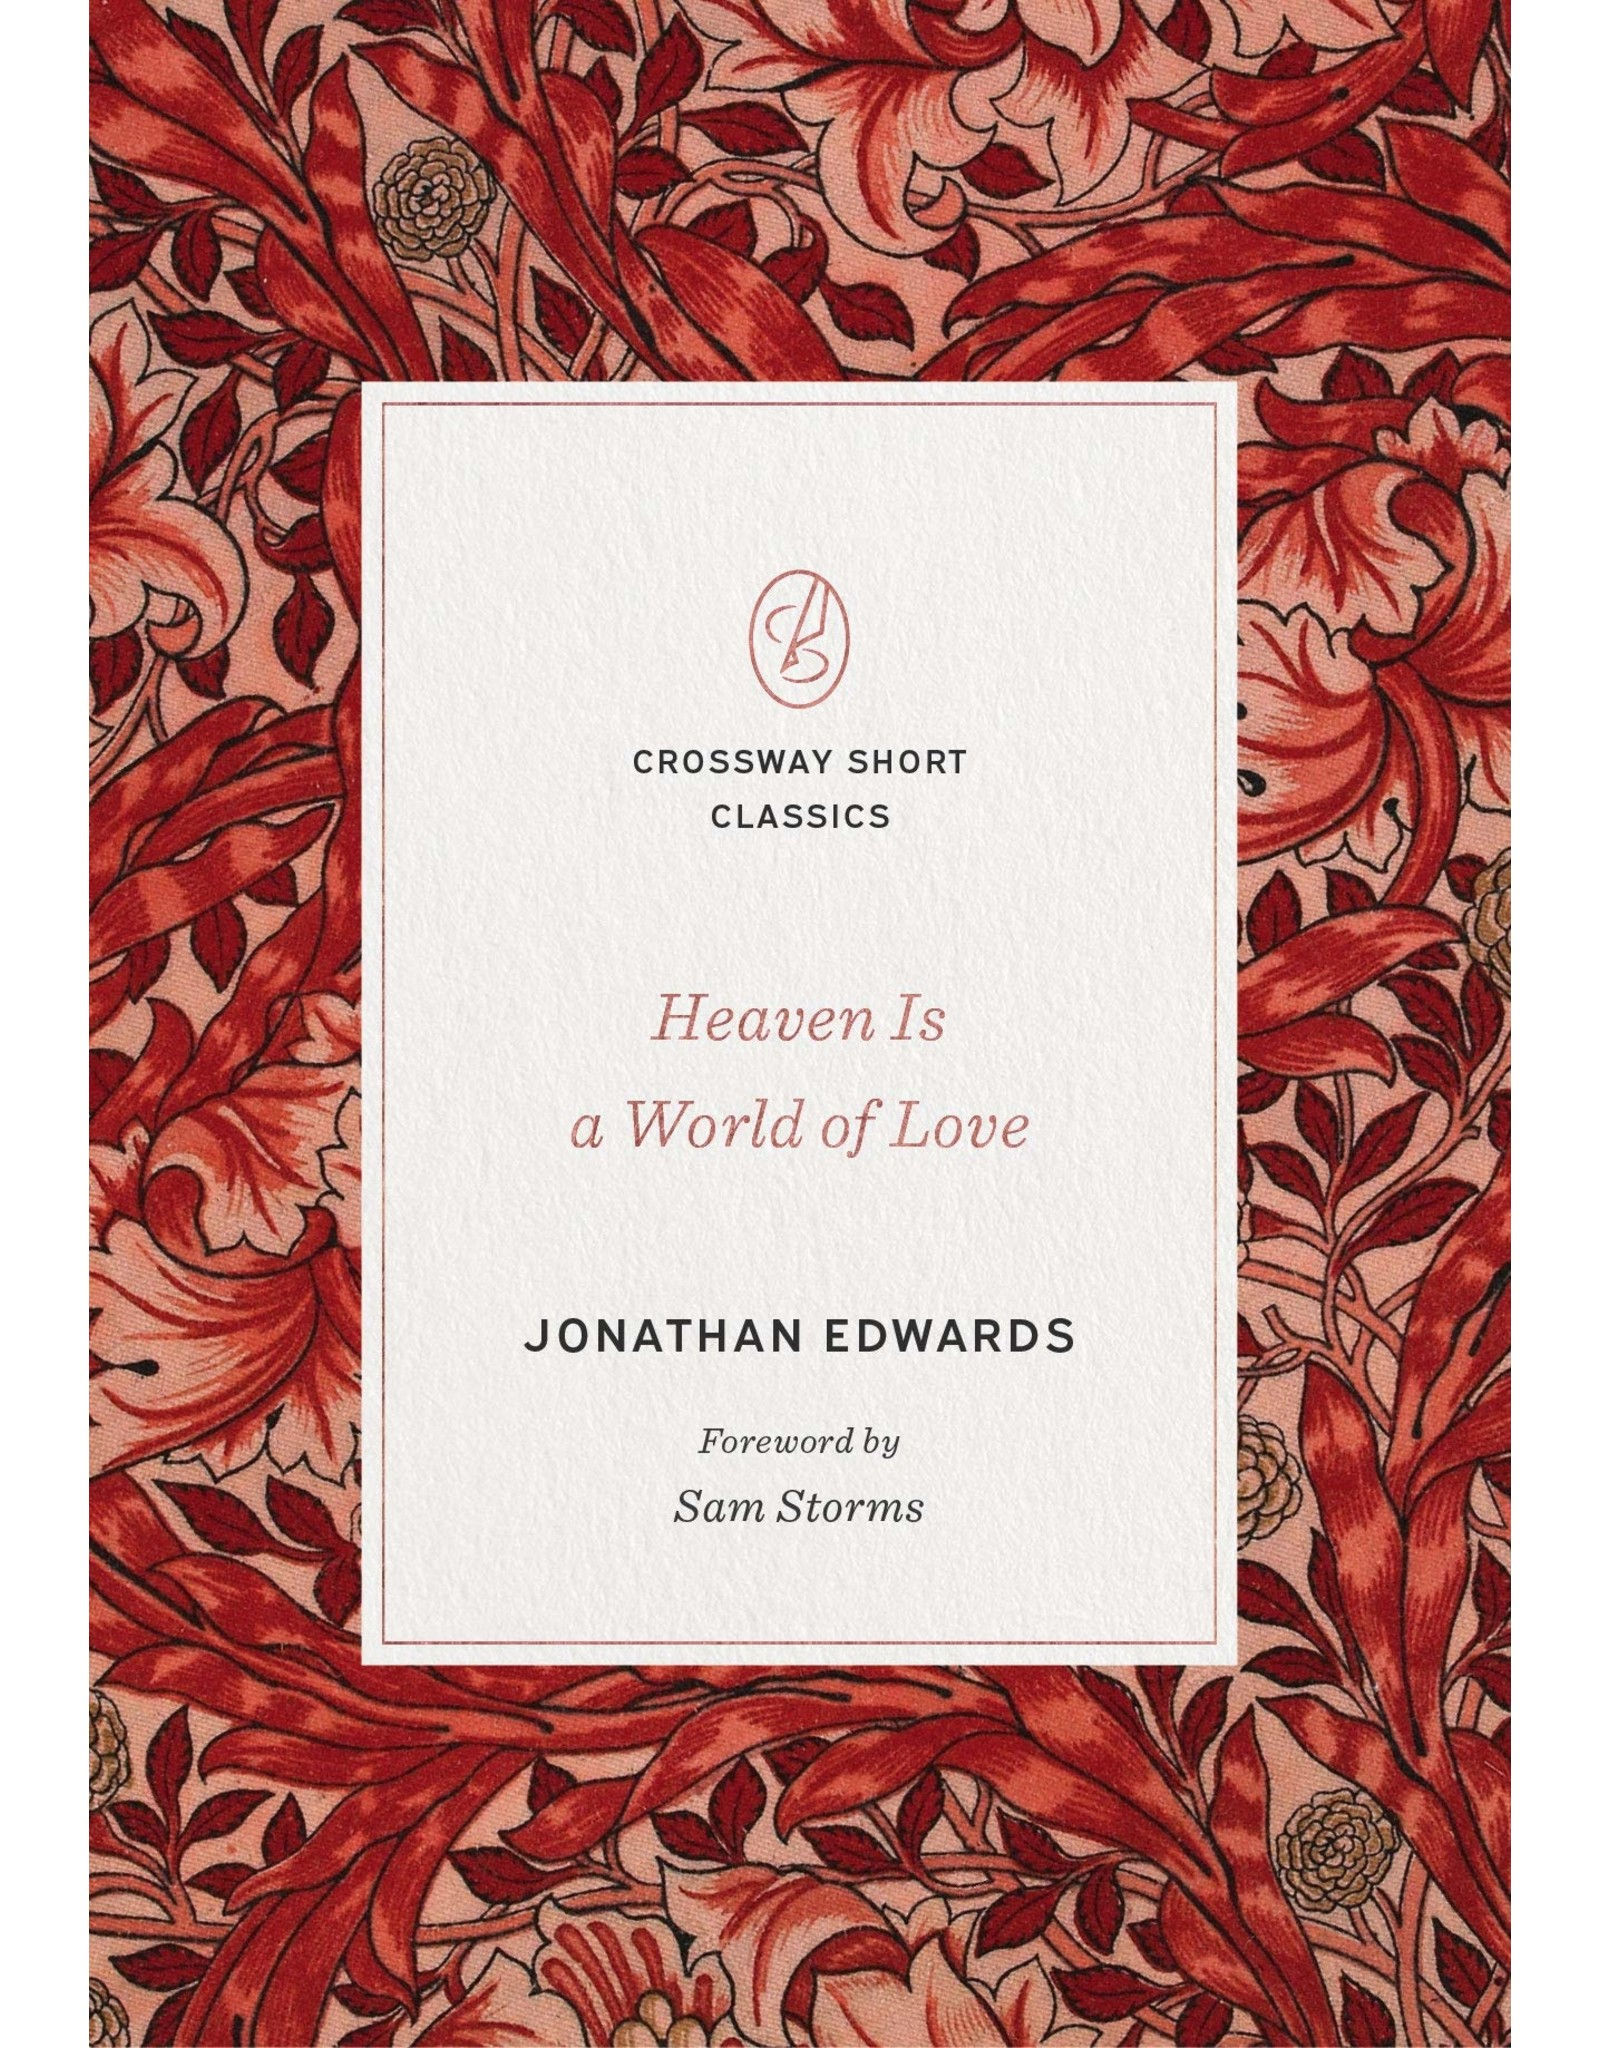 Crossway / Good News Heaven Is a World of Love